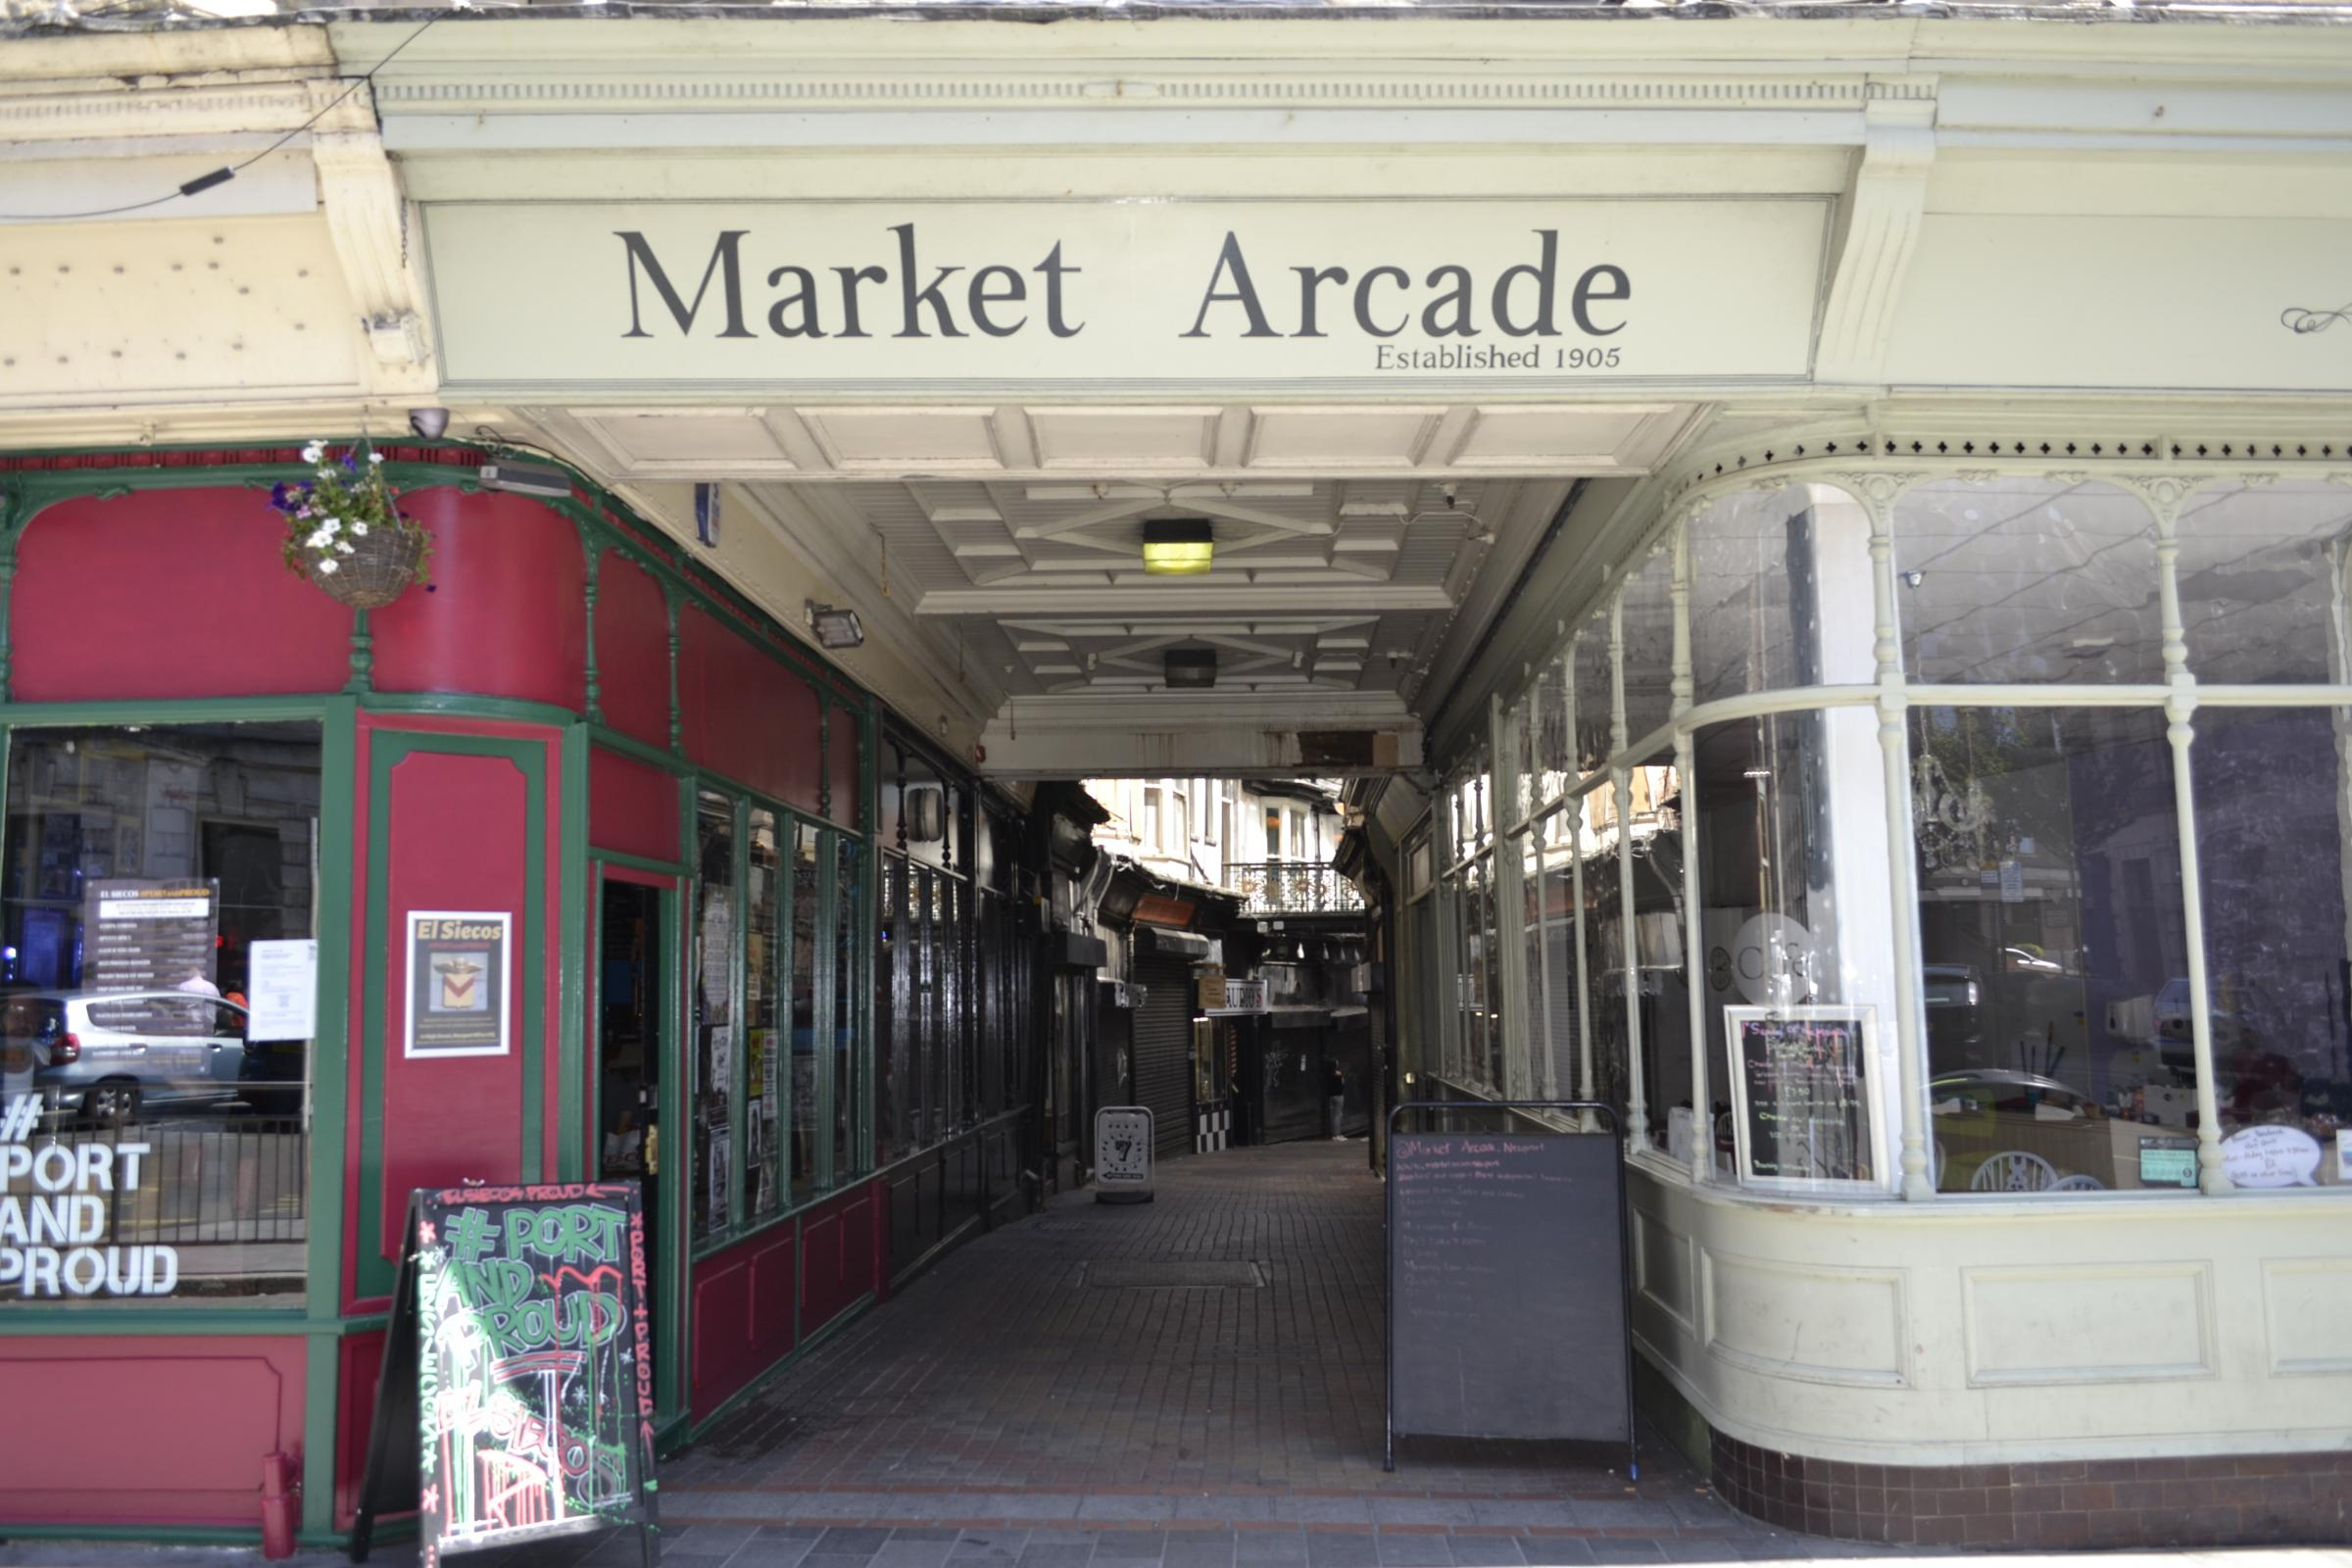 Market Arcade in Newport to be gated off at night to tackle anti-social behaviour